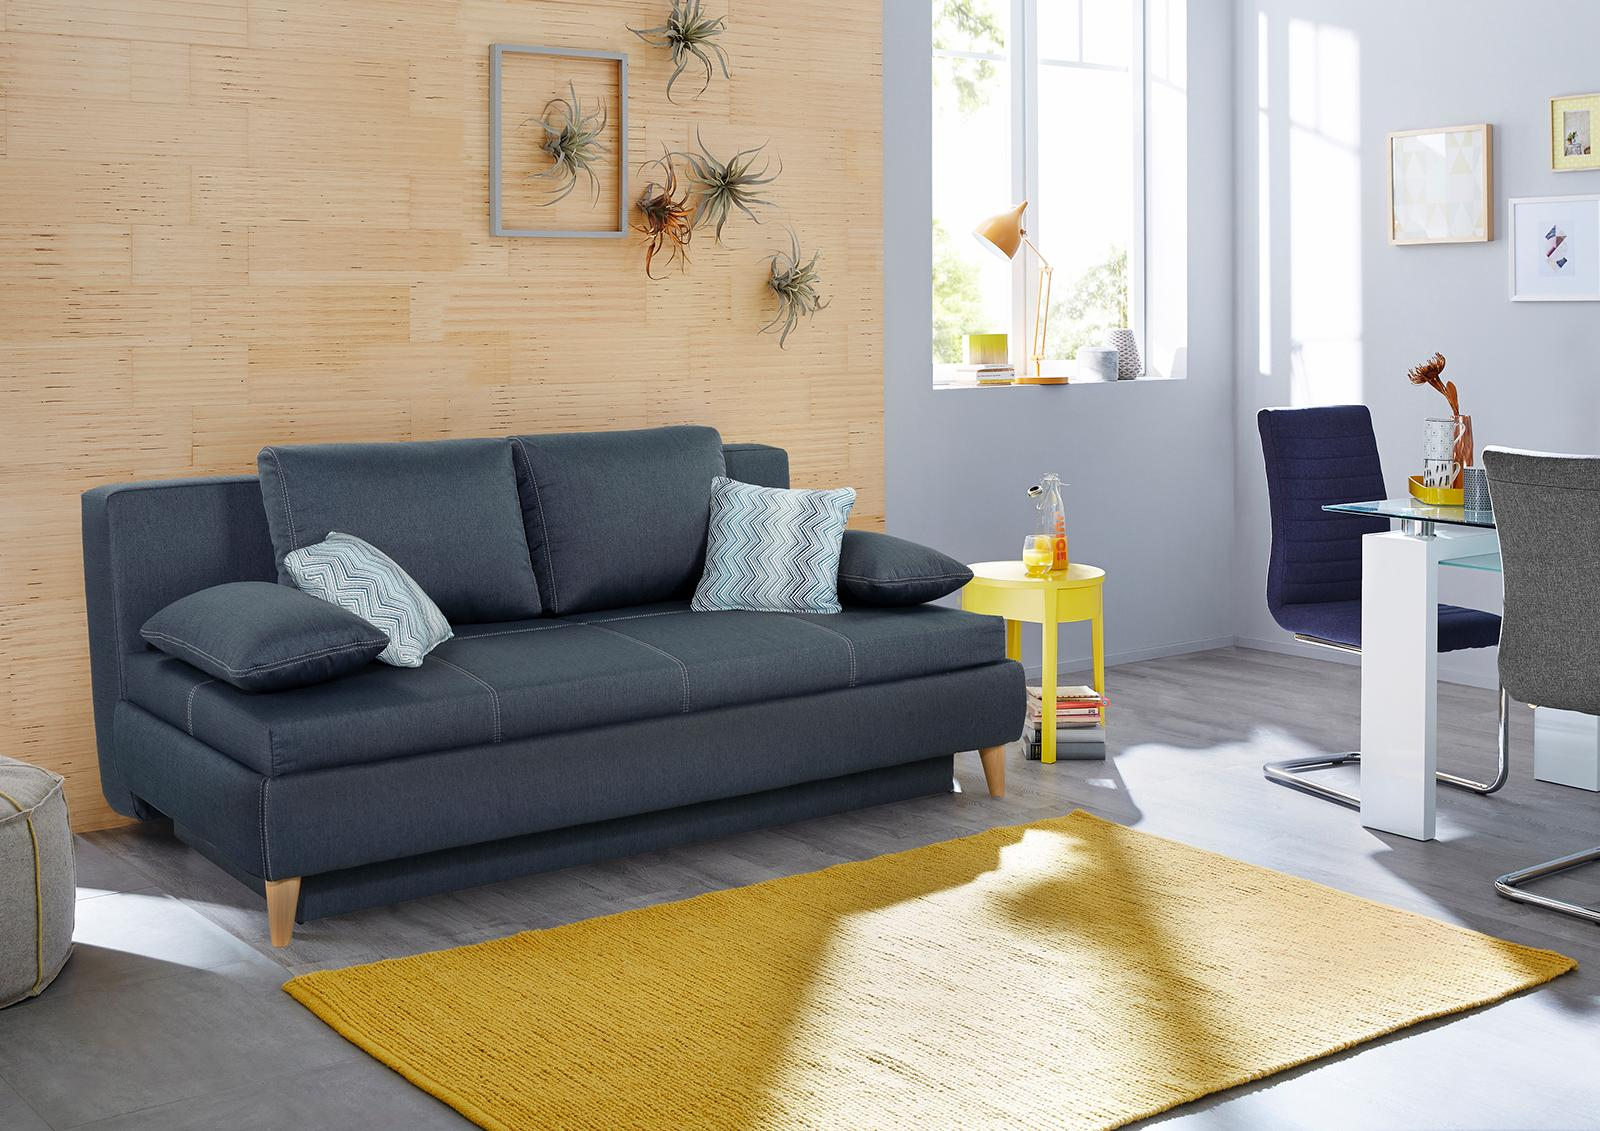 Image of Home affaire Schlafsofa